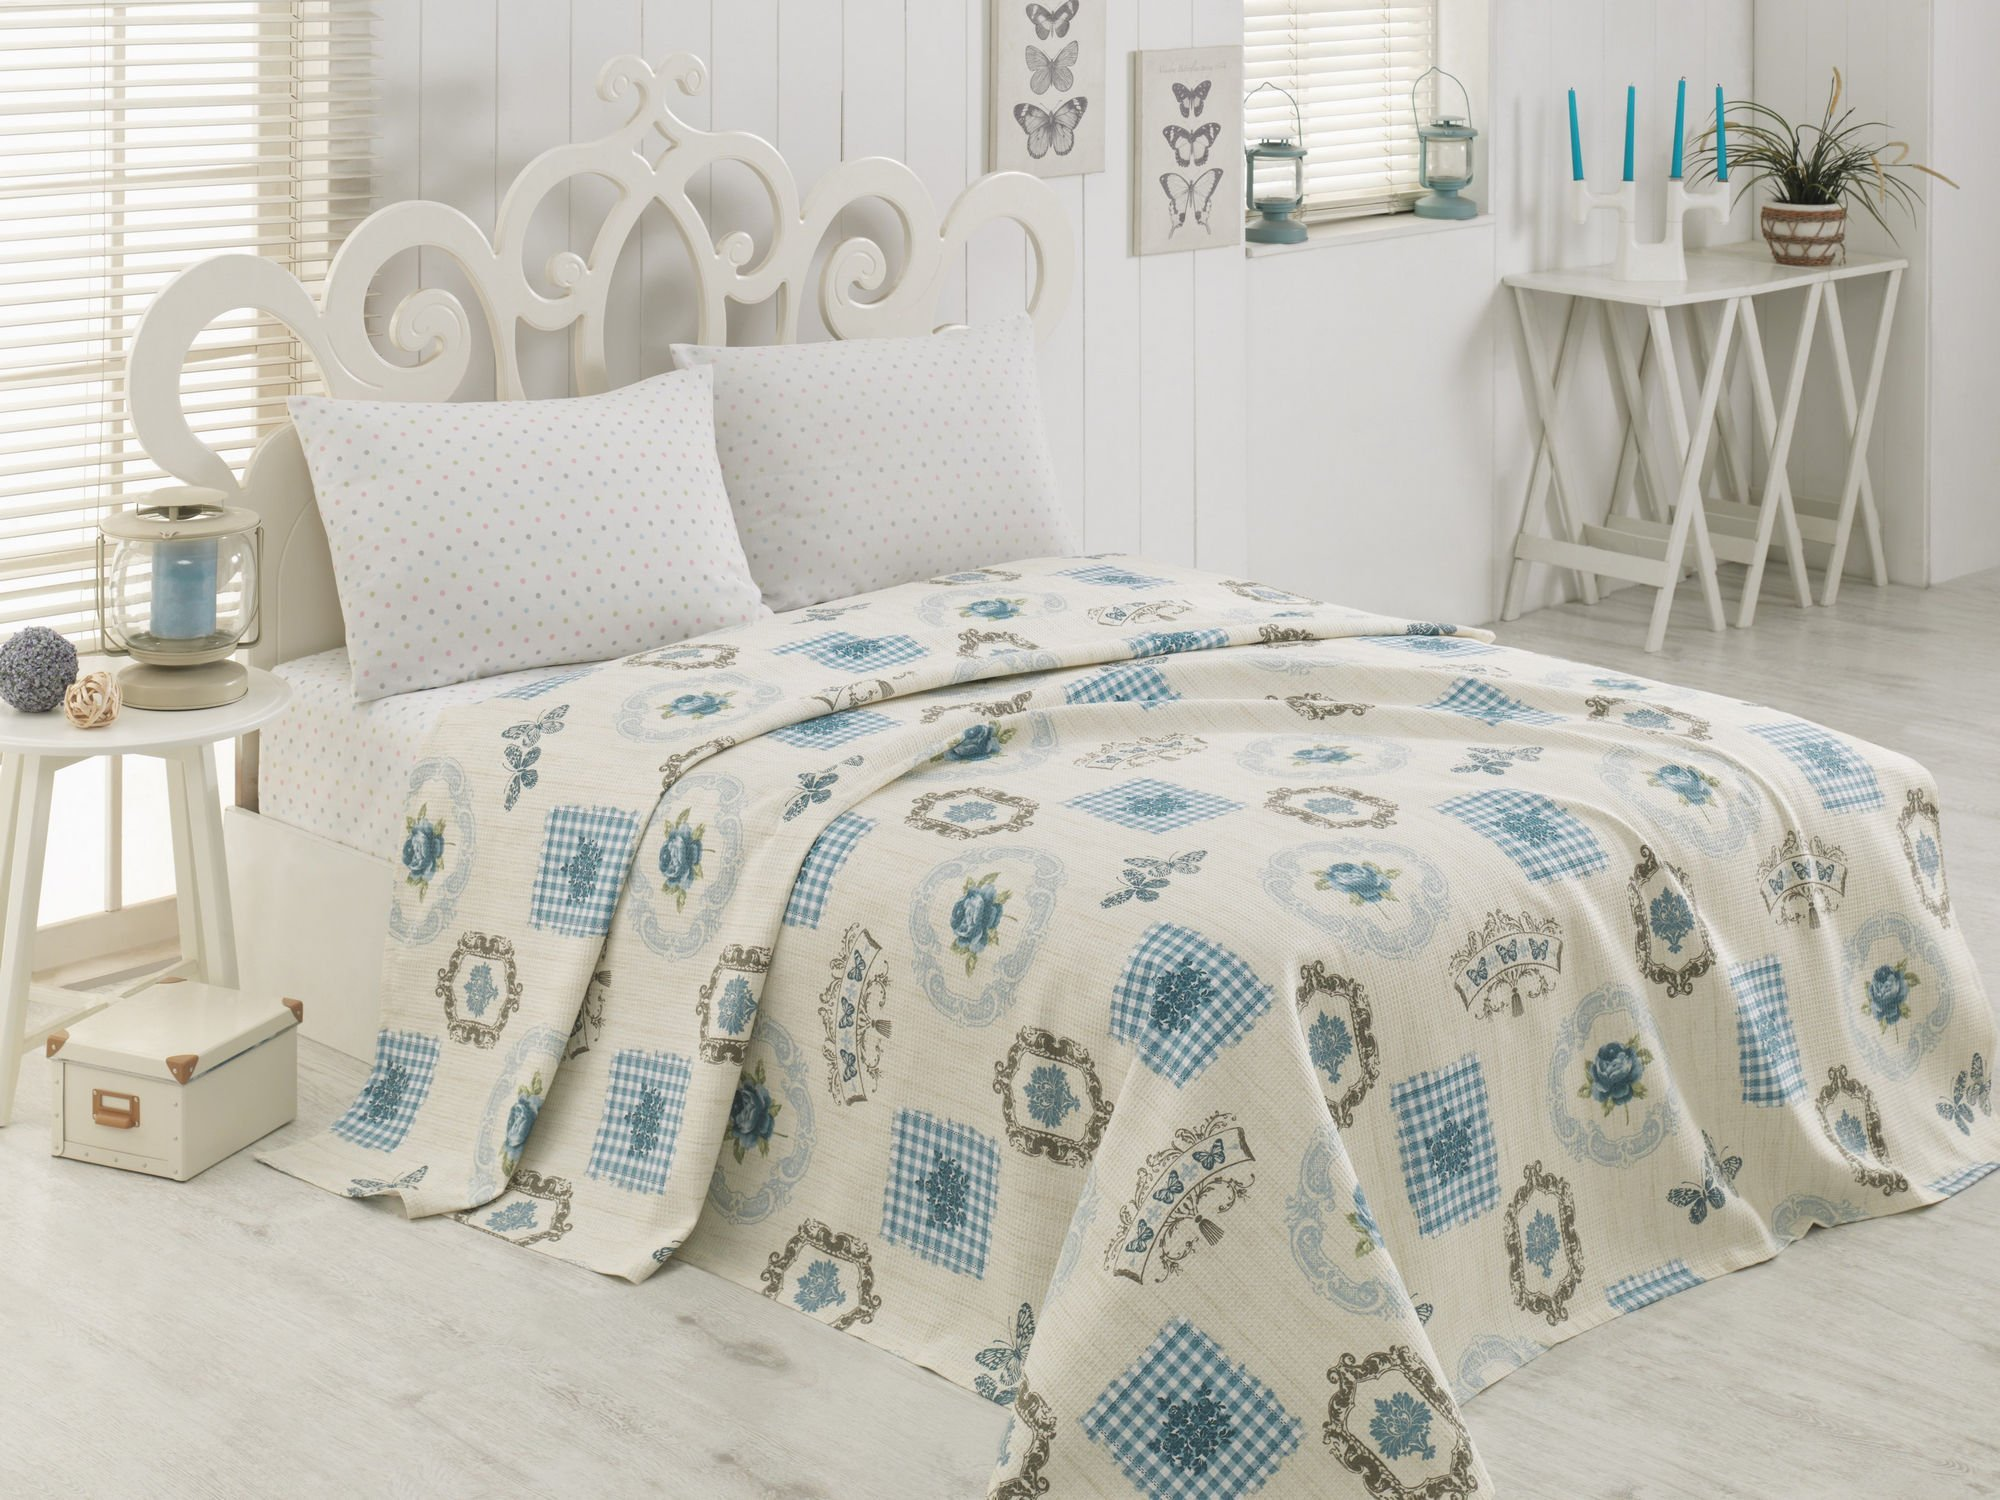 LaModaHome Shapes Coverlet, 100% Cotton - Butterflies, Roses and Patterns in Order - Size (63'' x 90.6'') for Twin Bed